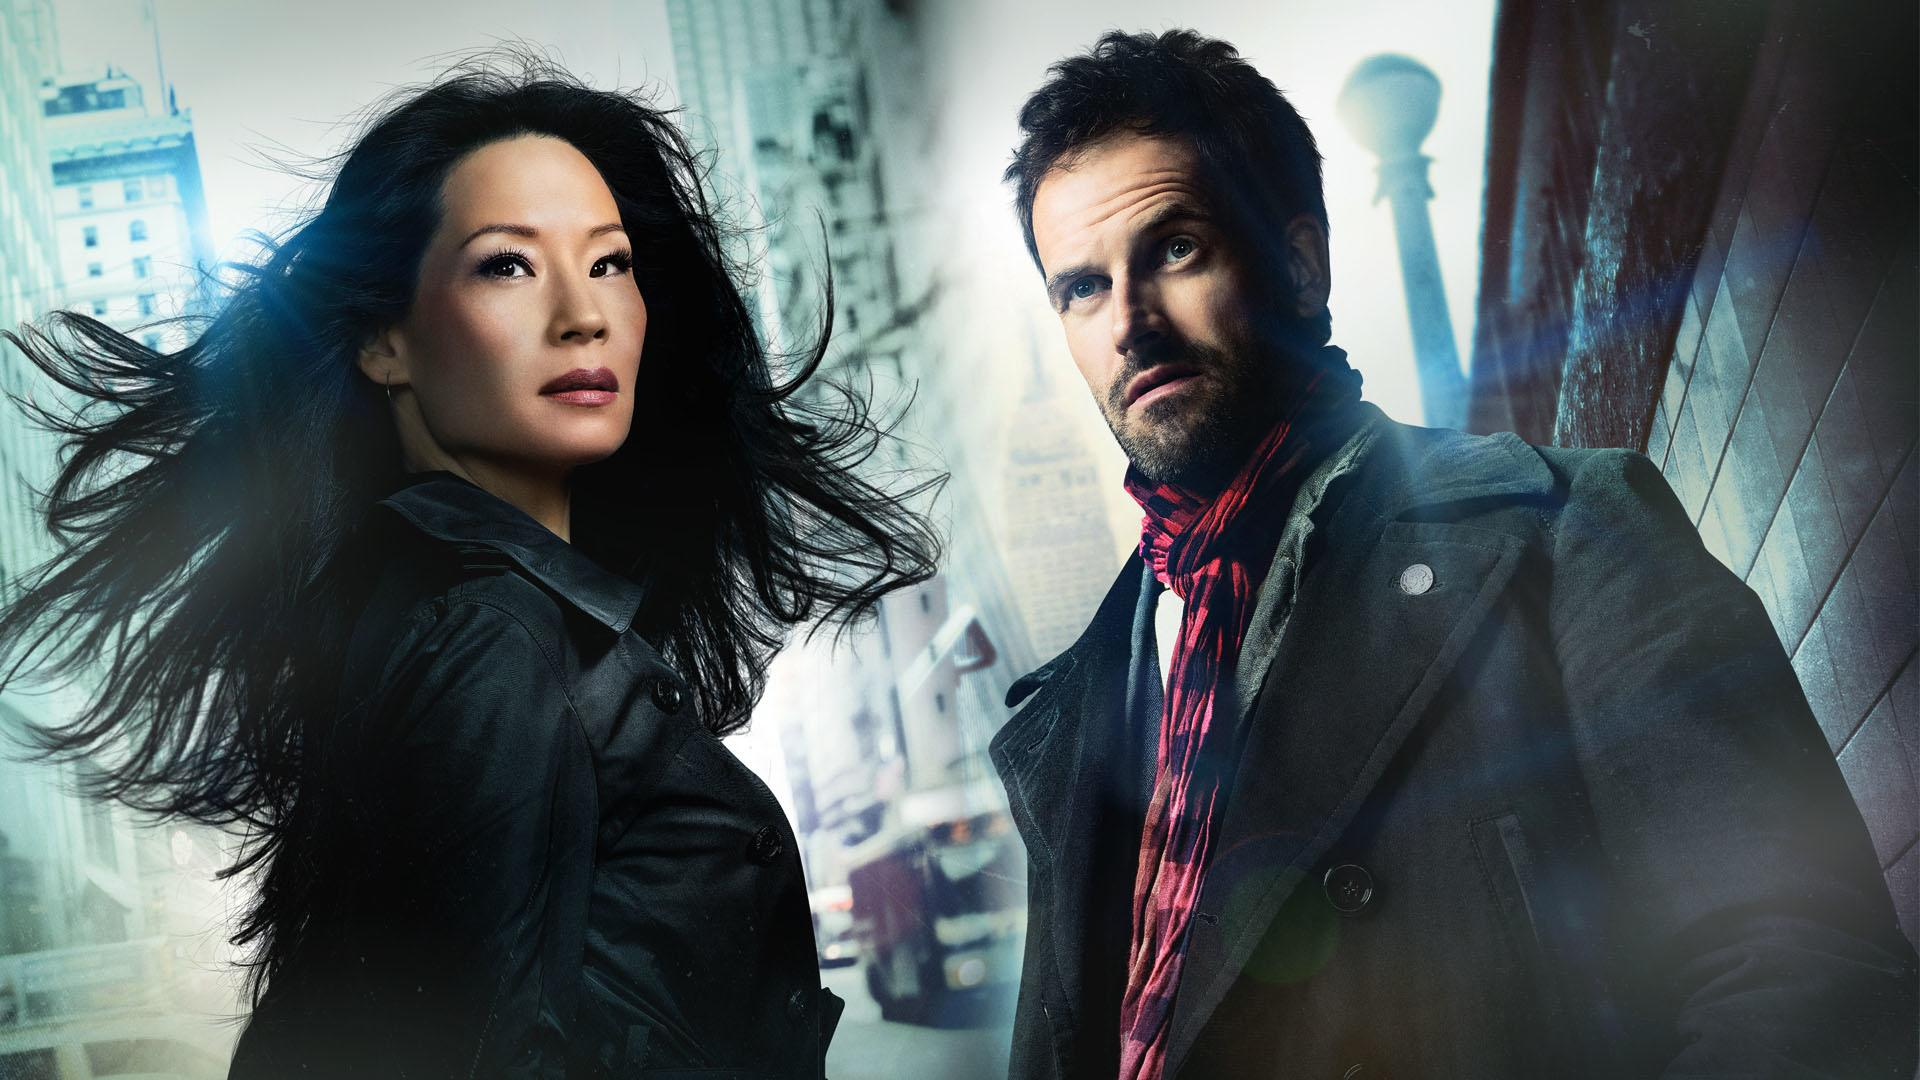 Elementary wallpapers HD quality